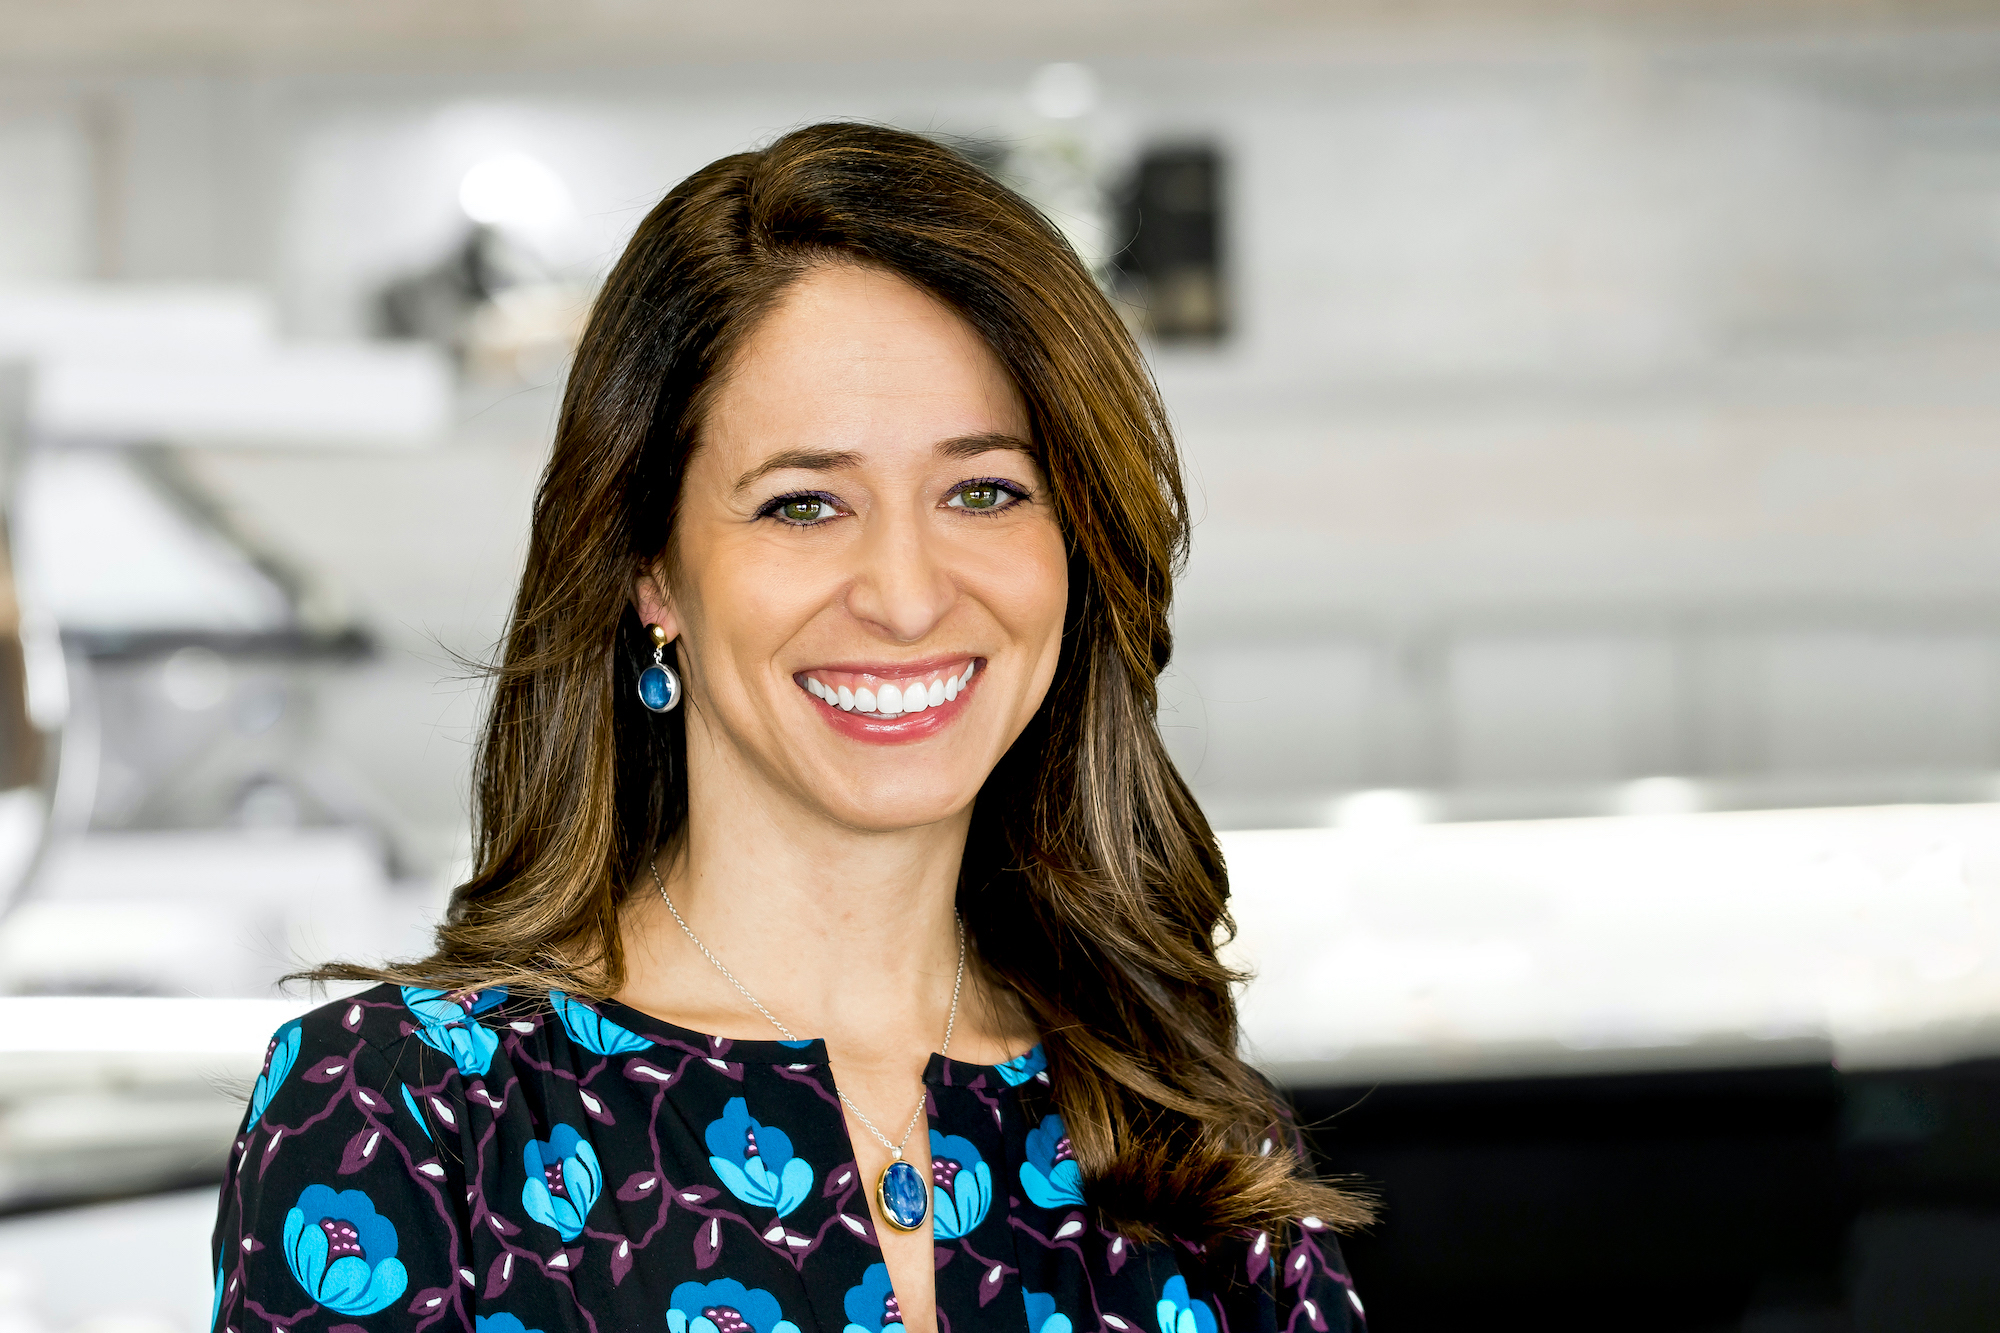 Headshot of Sales Manager Missy Ranney. With long brown hair and a big smile she is looking at the camera wearing a shirt with blue flowers and blue tear drop earrings.